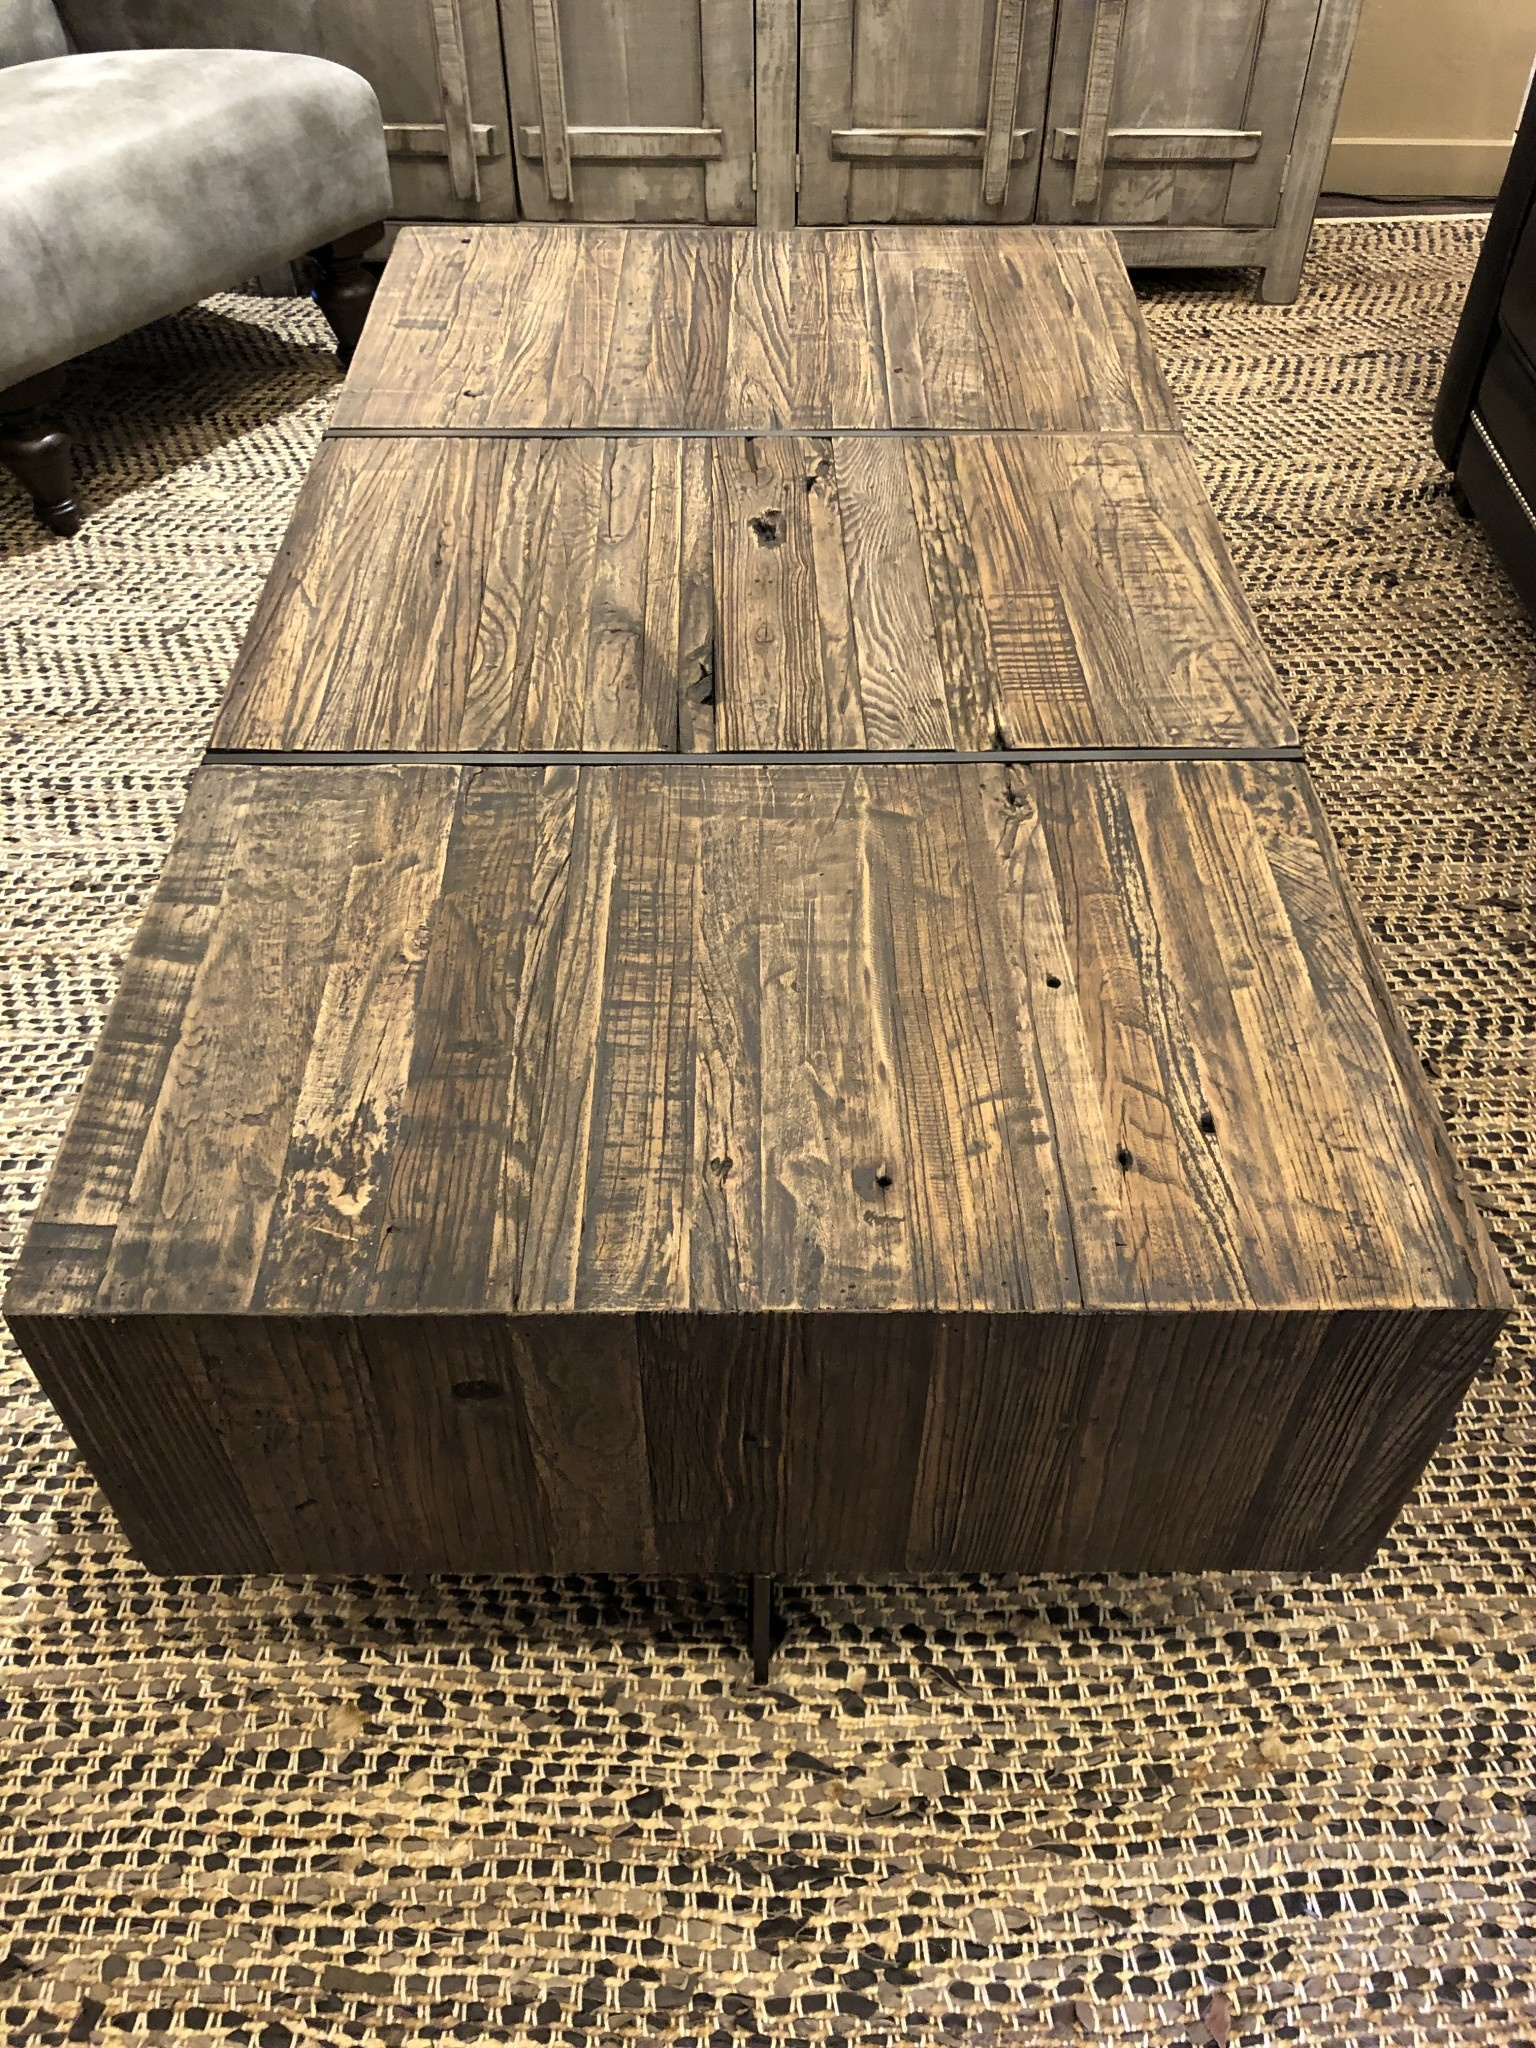 connell coffee table 54 x 30 x 18h